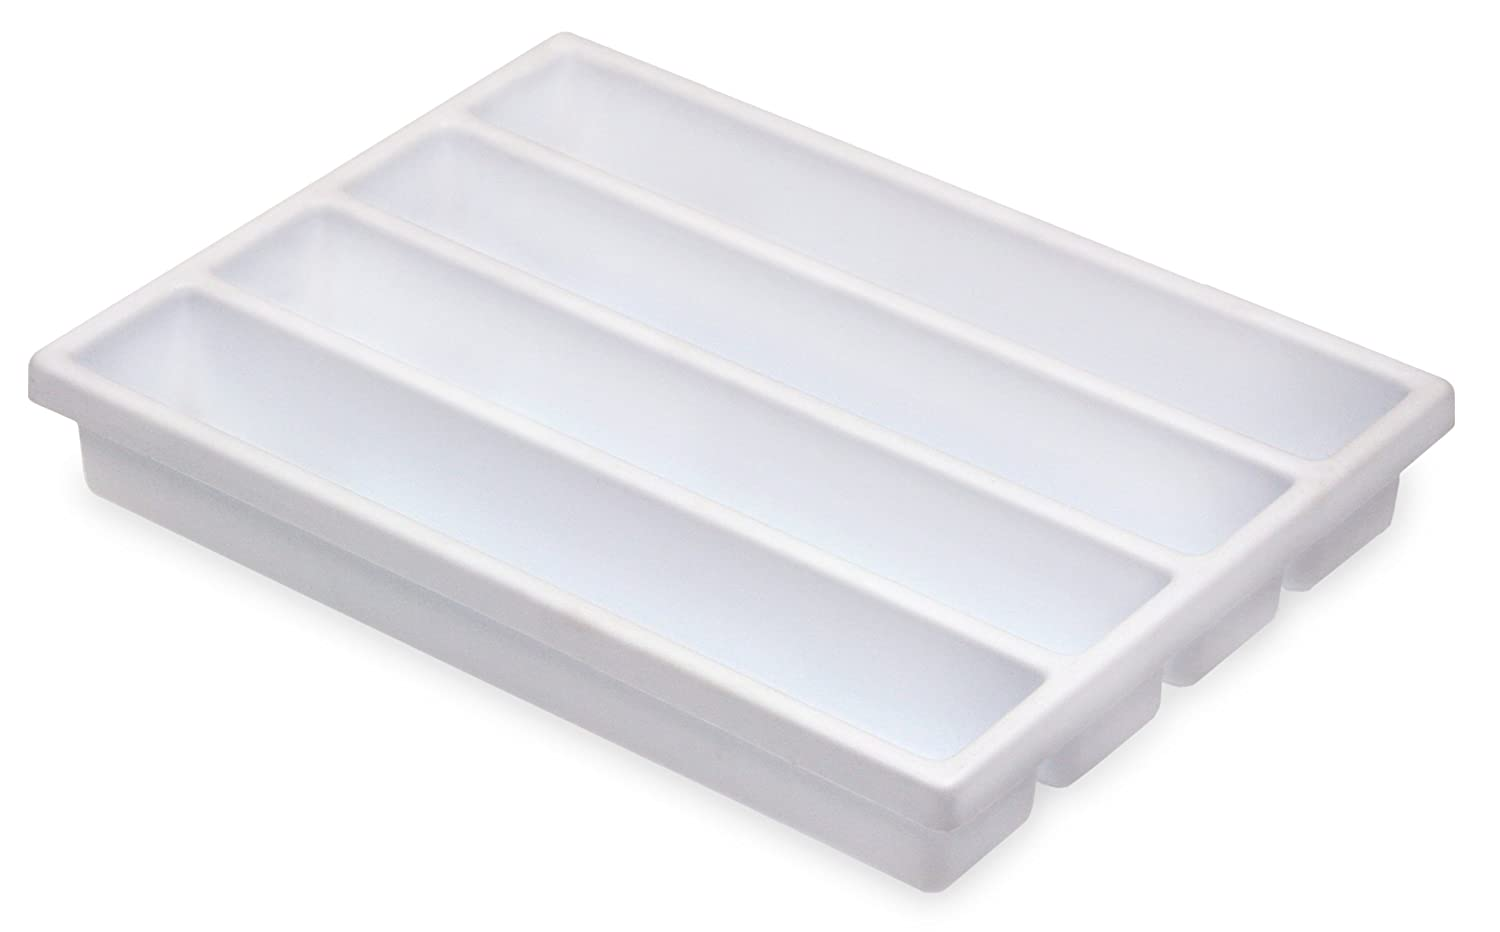 "TrippNT 50975 High Impact Styrene 4 Long CompartmentDrawer Organizer, 11-5/8"" Width x 2-3/8"" Height x 15-5/8"" Depth"